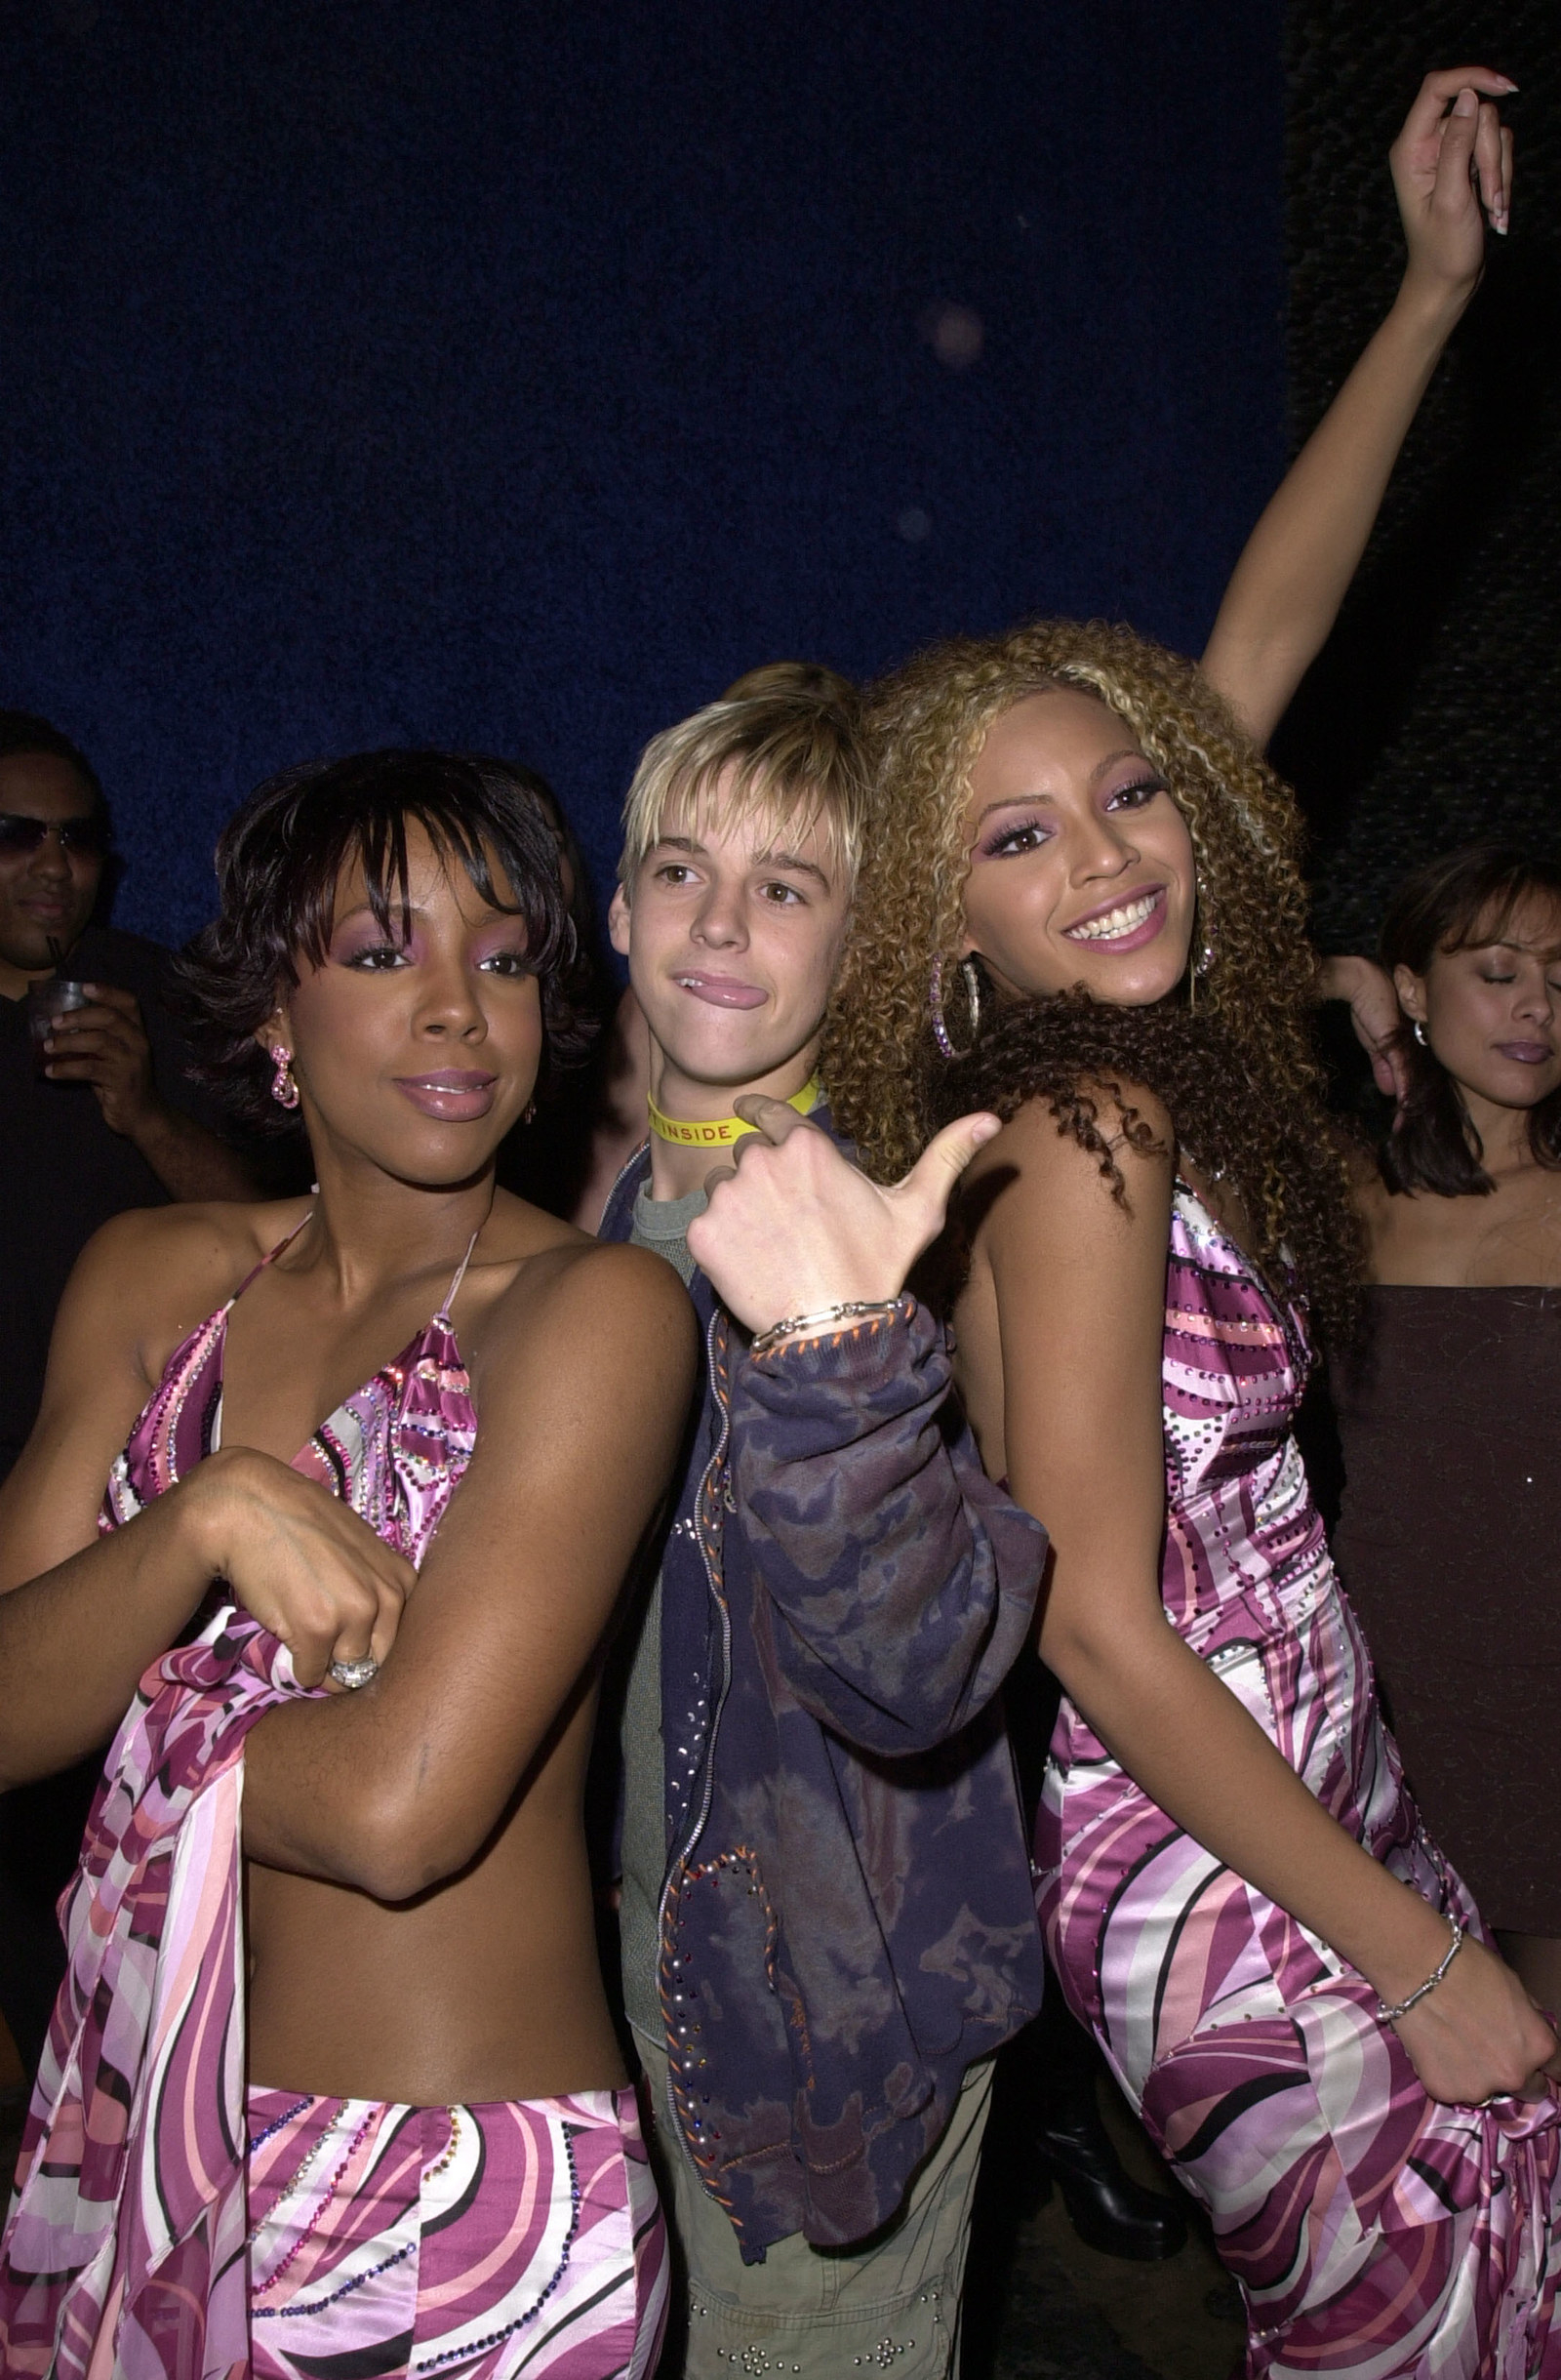 First of all, this picture where she's losing her shit grinding with Kelly Rowland and Aaron Carter.